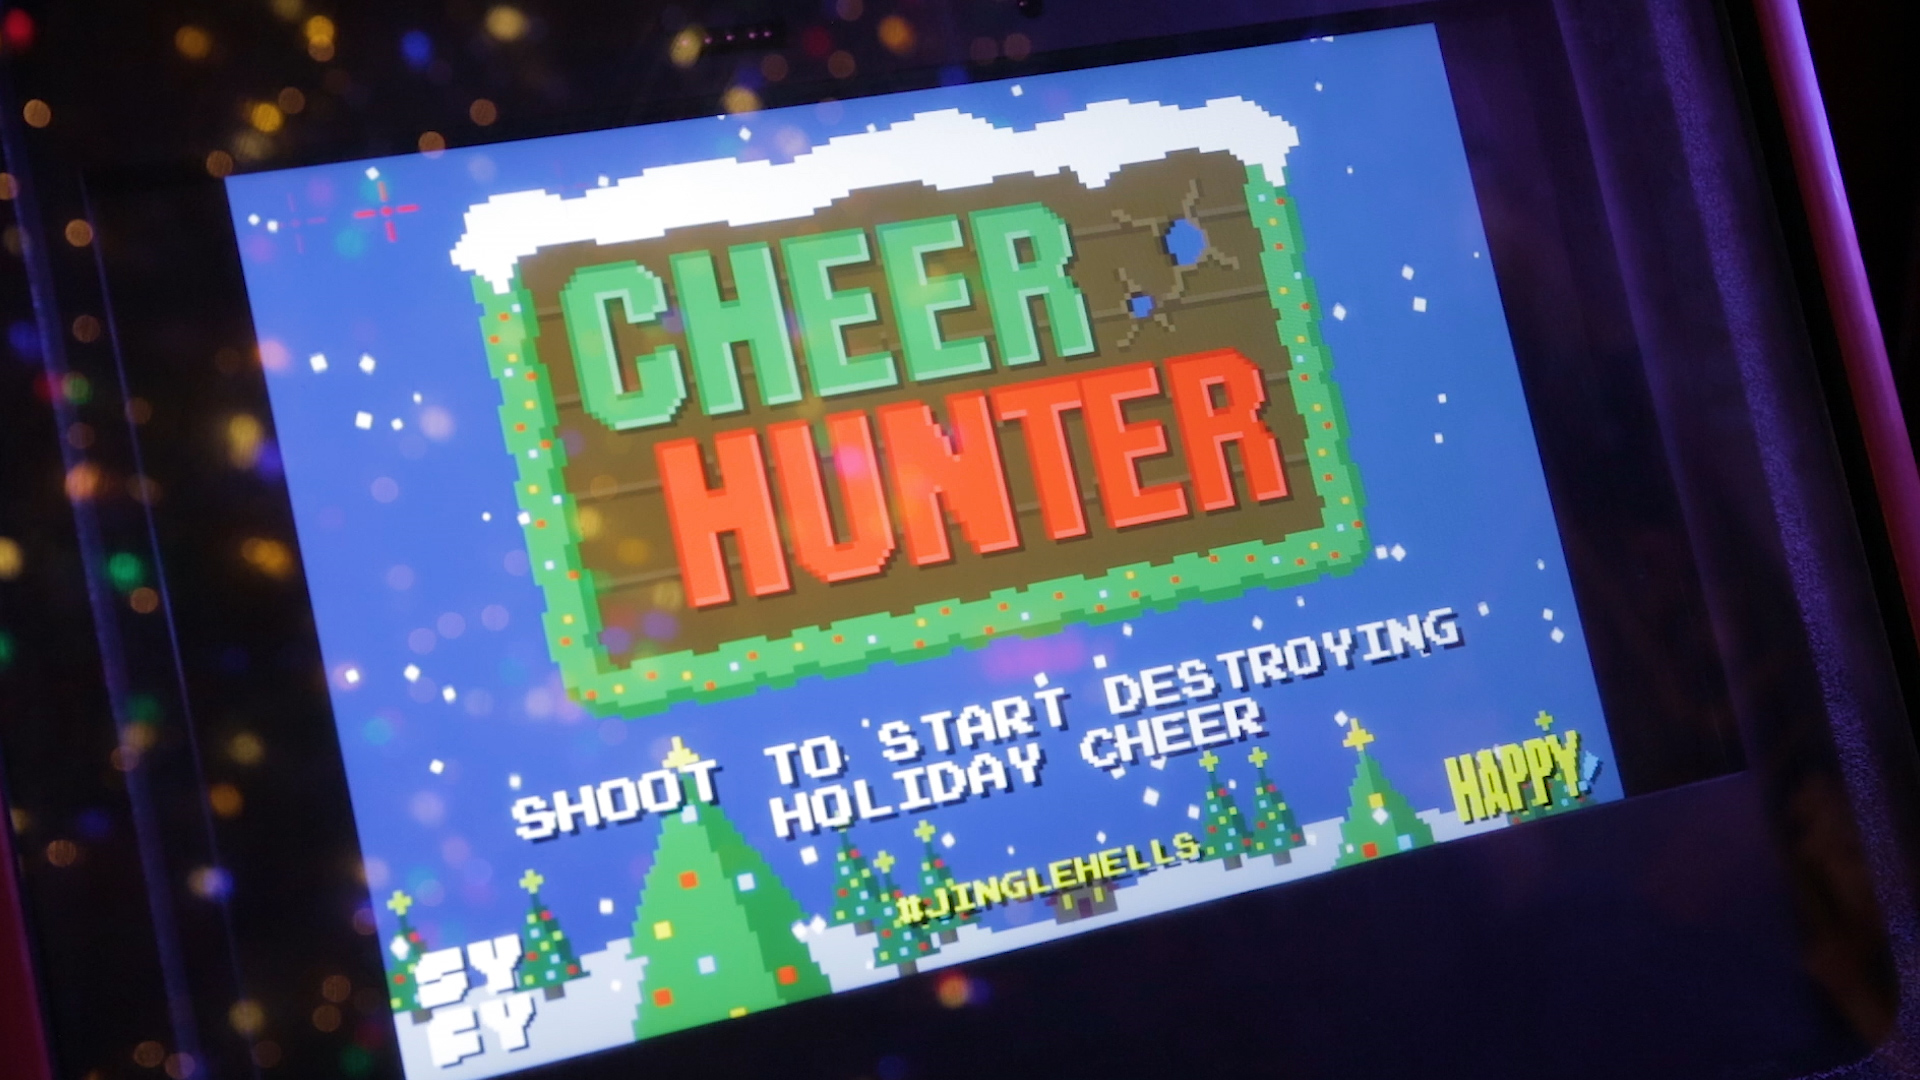 CHEER HUNTER - 1.jpg